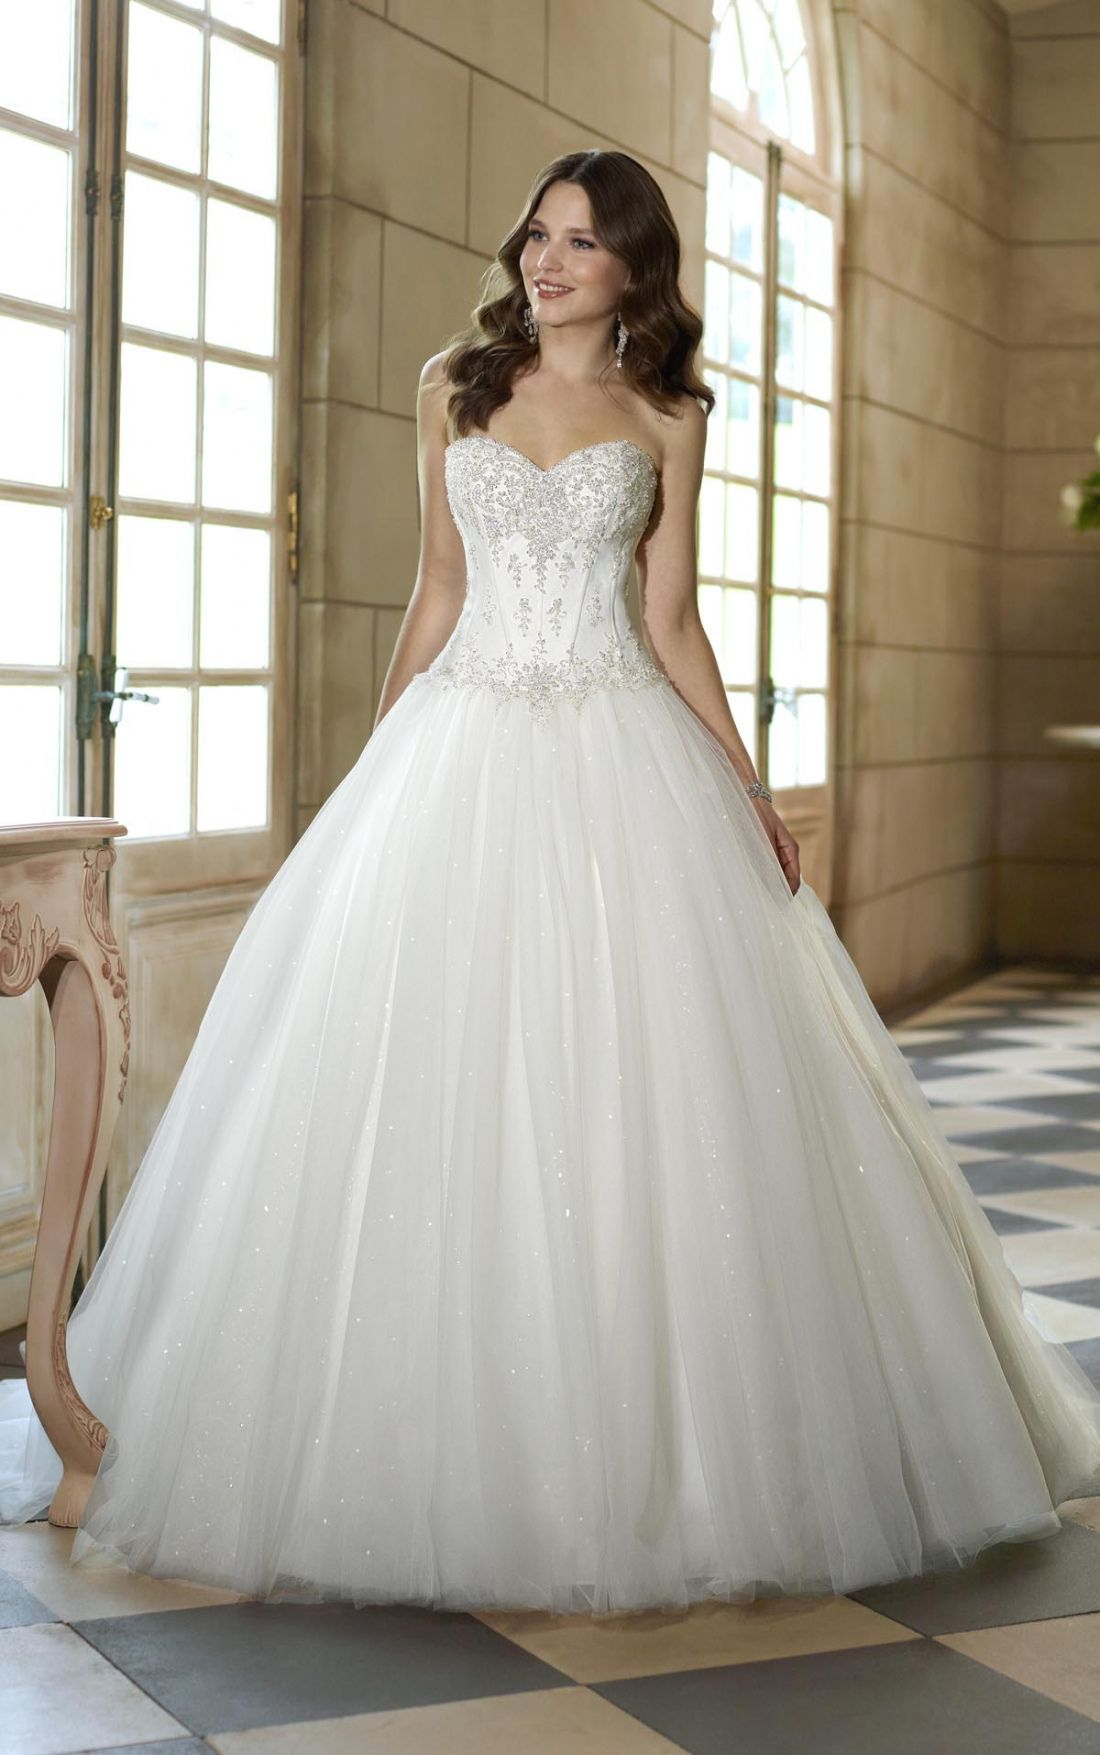 70+ Beaded Ball Gown Wedding Dress - Wedding Dresses for the Mature ...